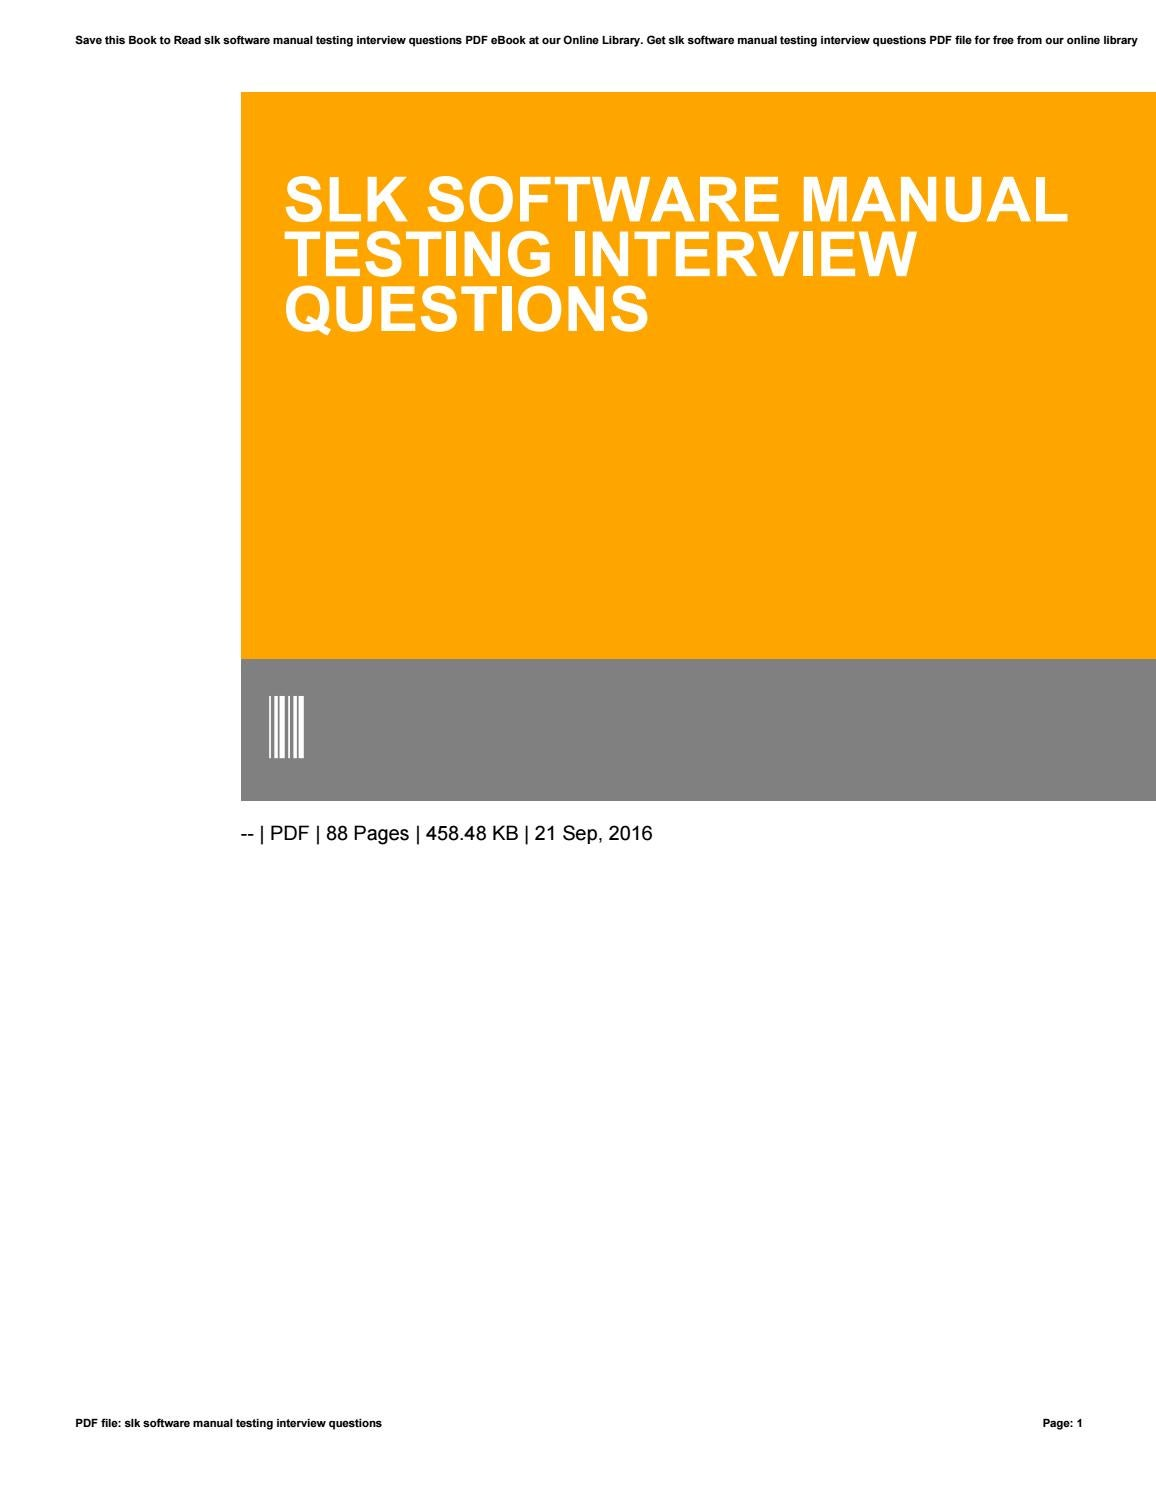 Slk software manual testing interview questions by